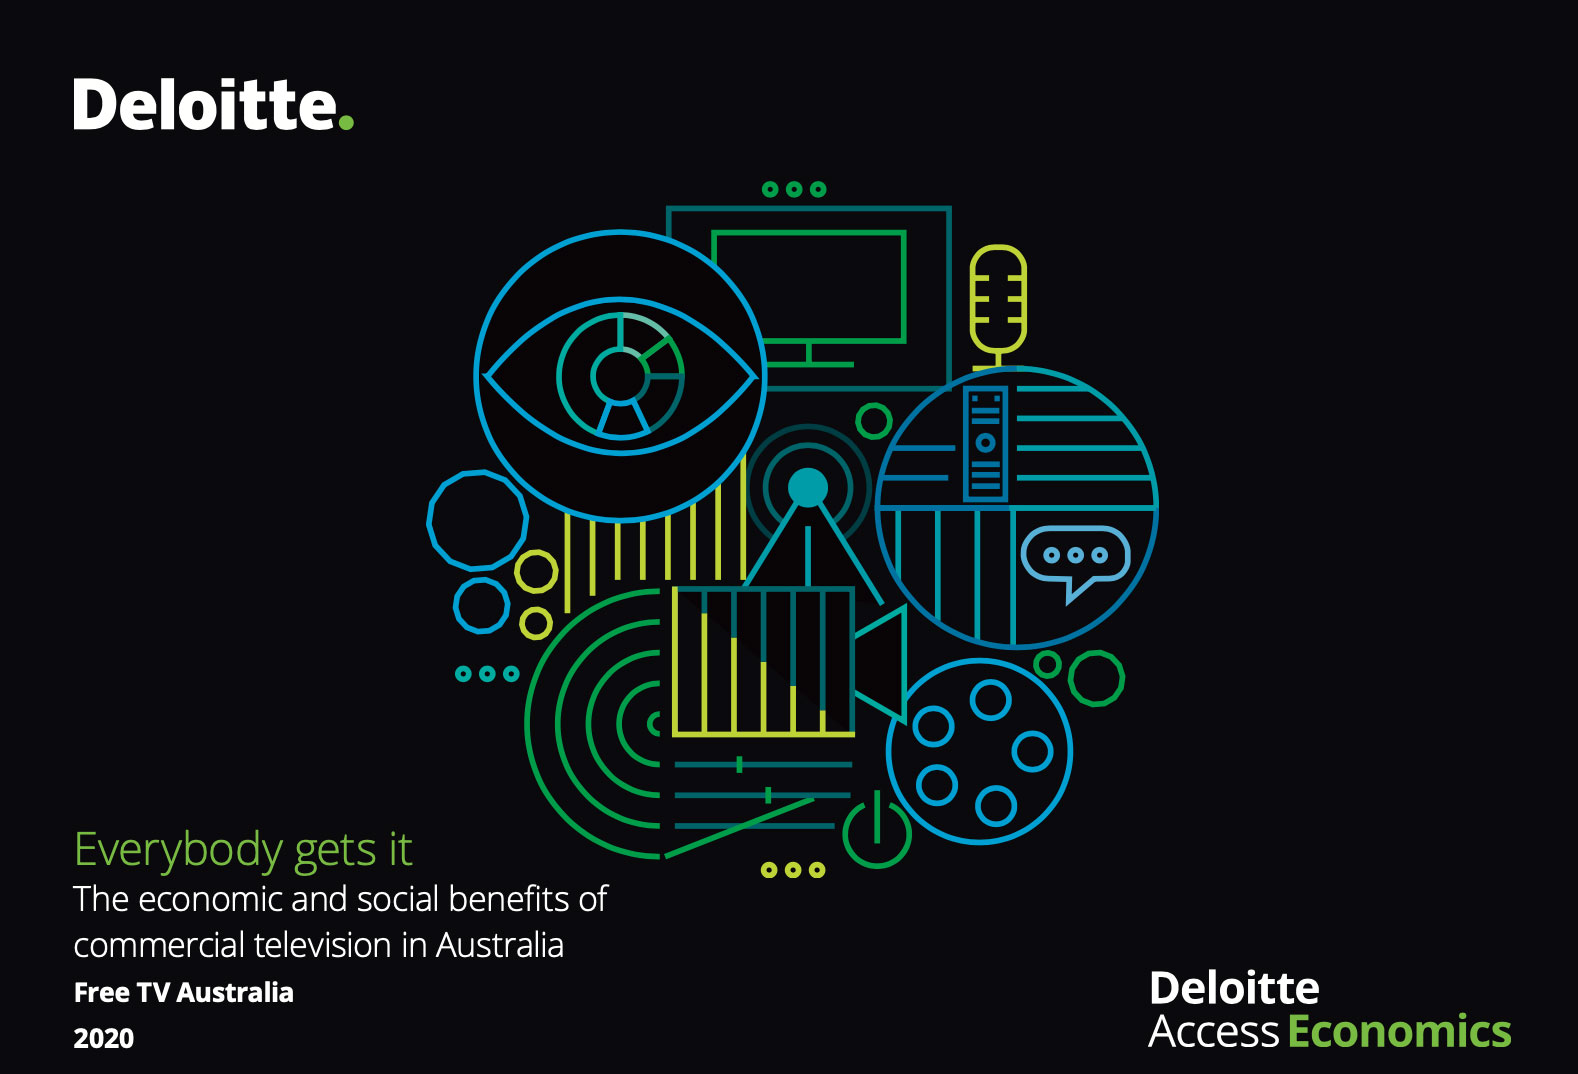 Deloitte research